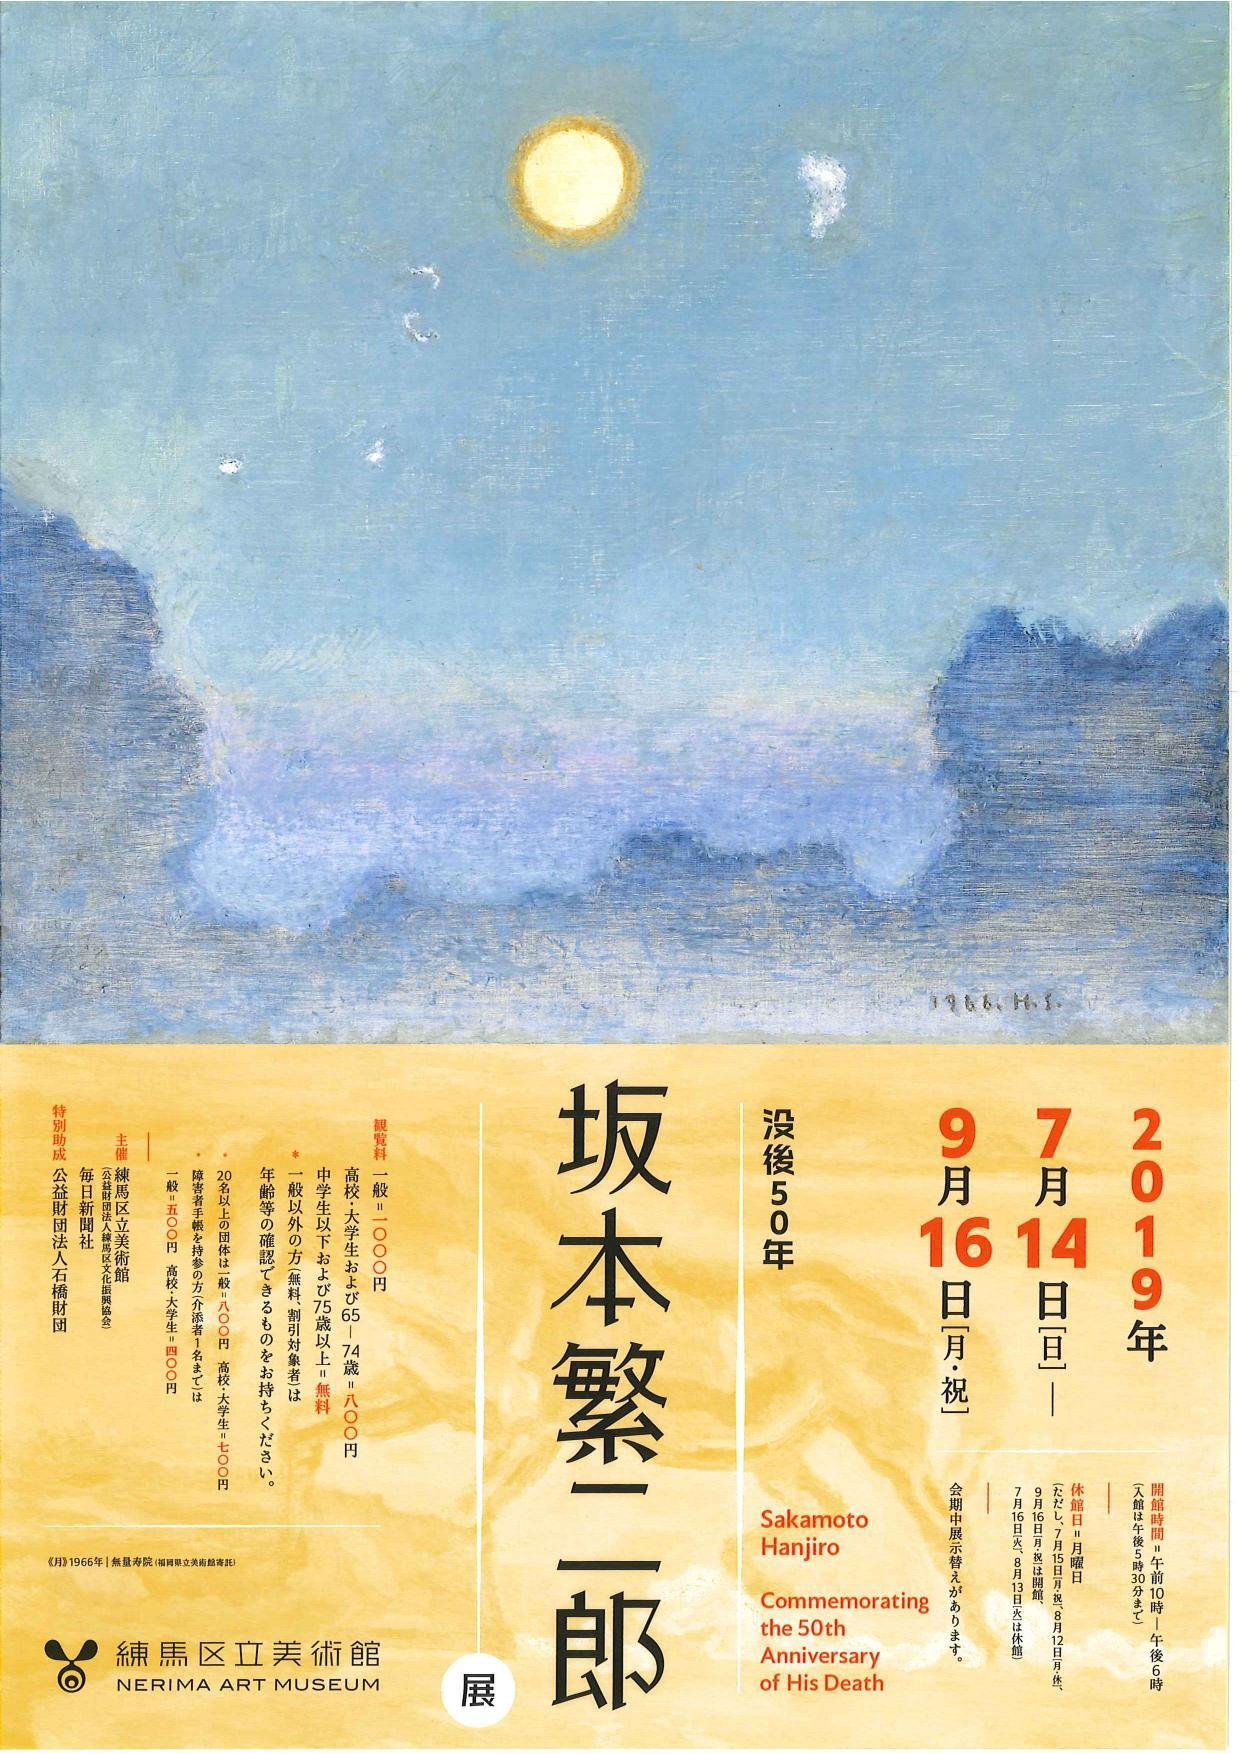 It is Hanjiro Sakamoto exhibition image after the death for 50 years